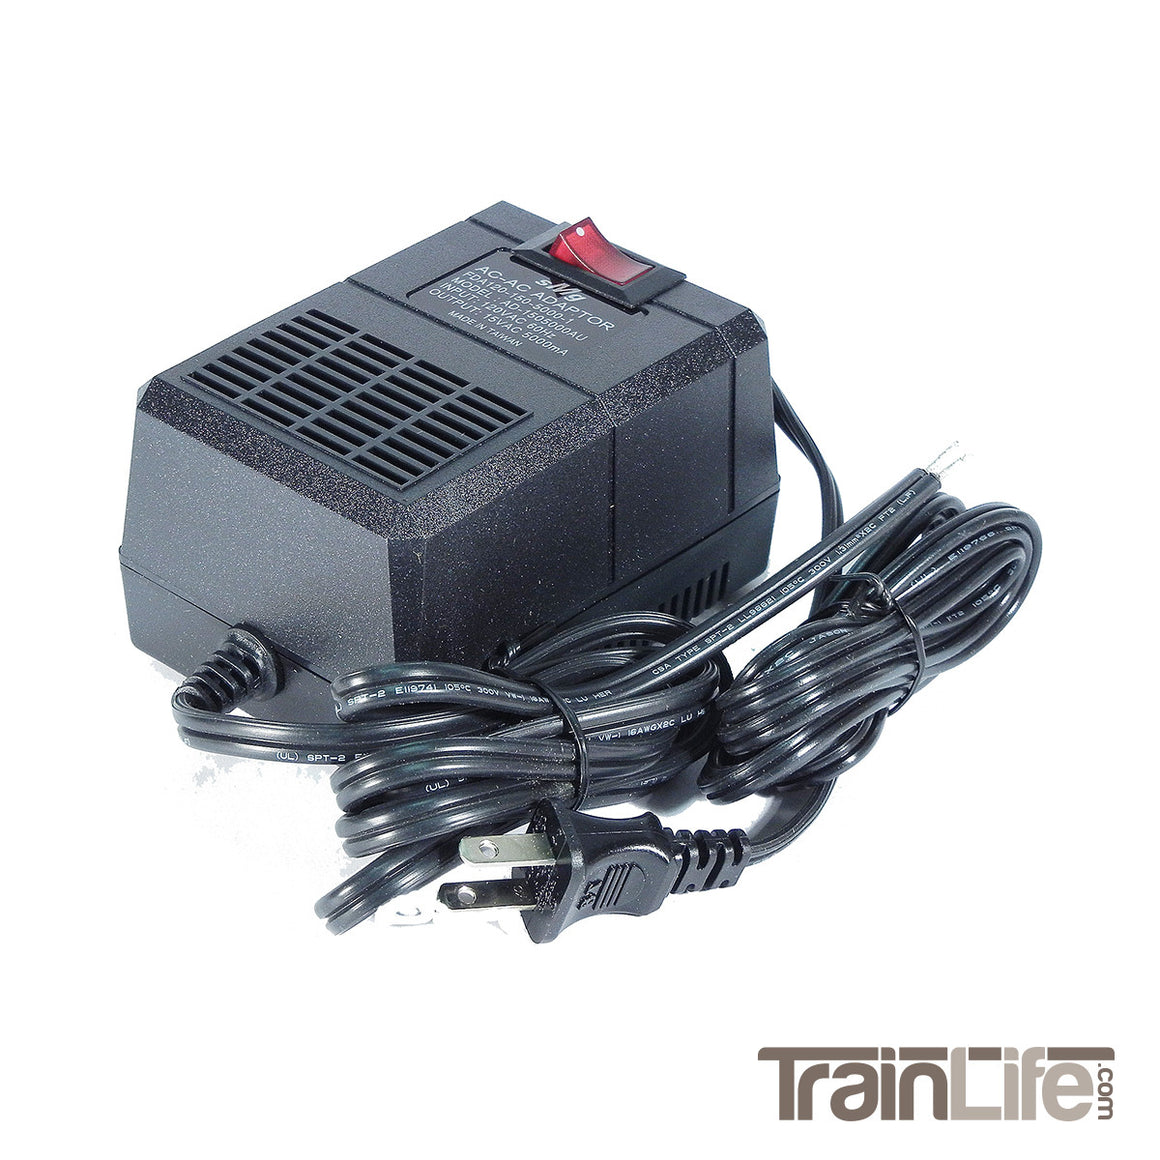 P515, Power supply for PH-Pro, 15v AC, 5 Amp.